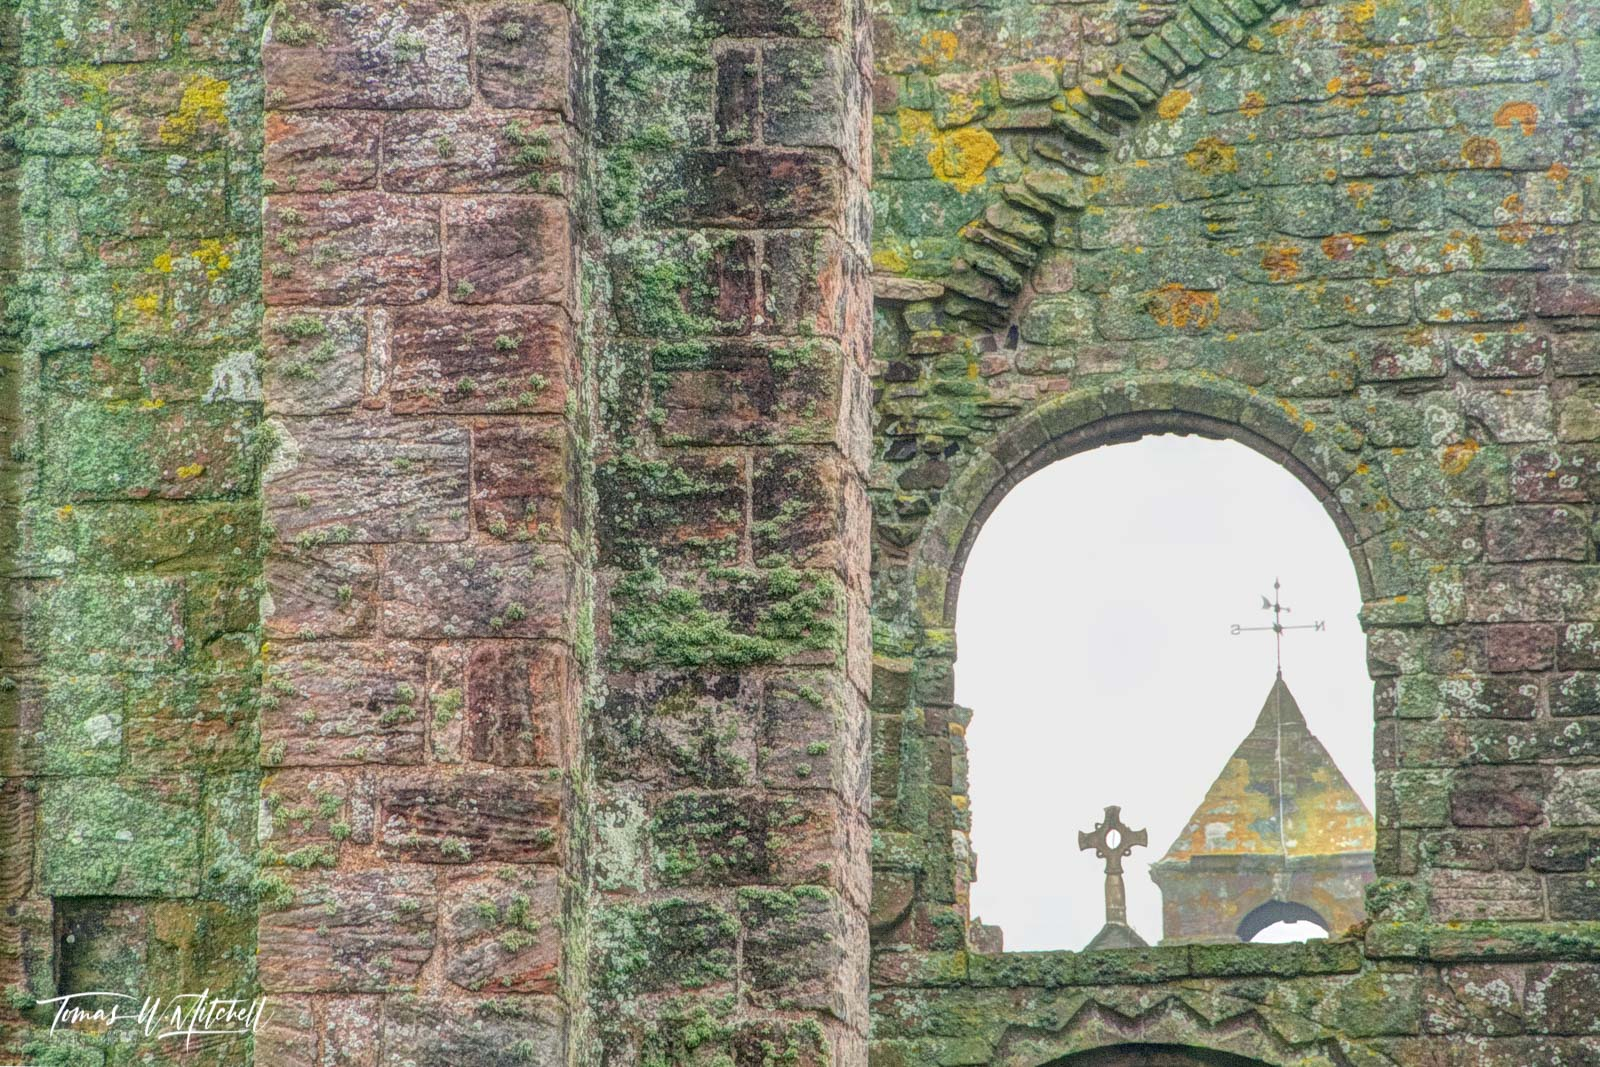 limited edition, museum grade, fine art, prints, window, lindisfarne, england, catholic, priory, rock, walls, moss, lichen, color, photograph, norman, benedictine, henry VIII, church, photo